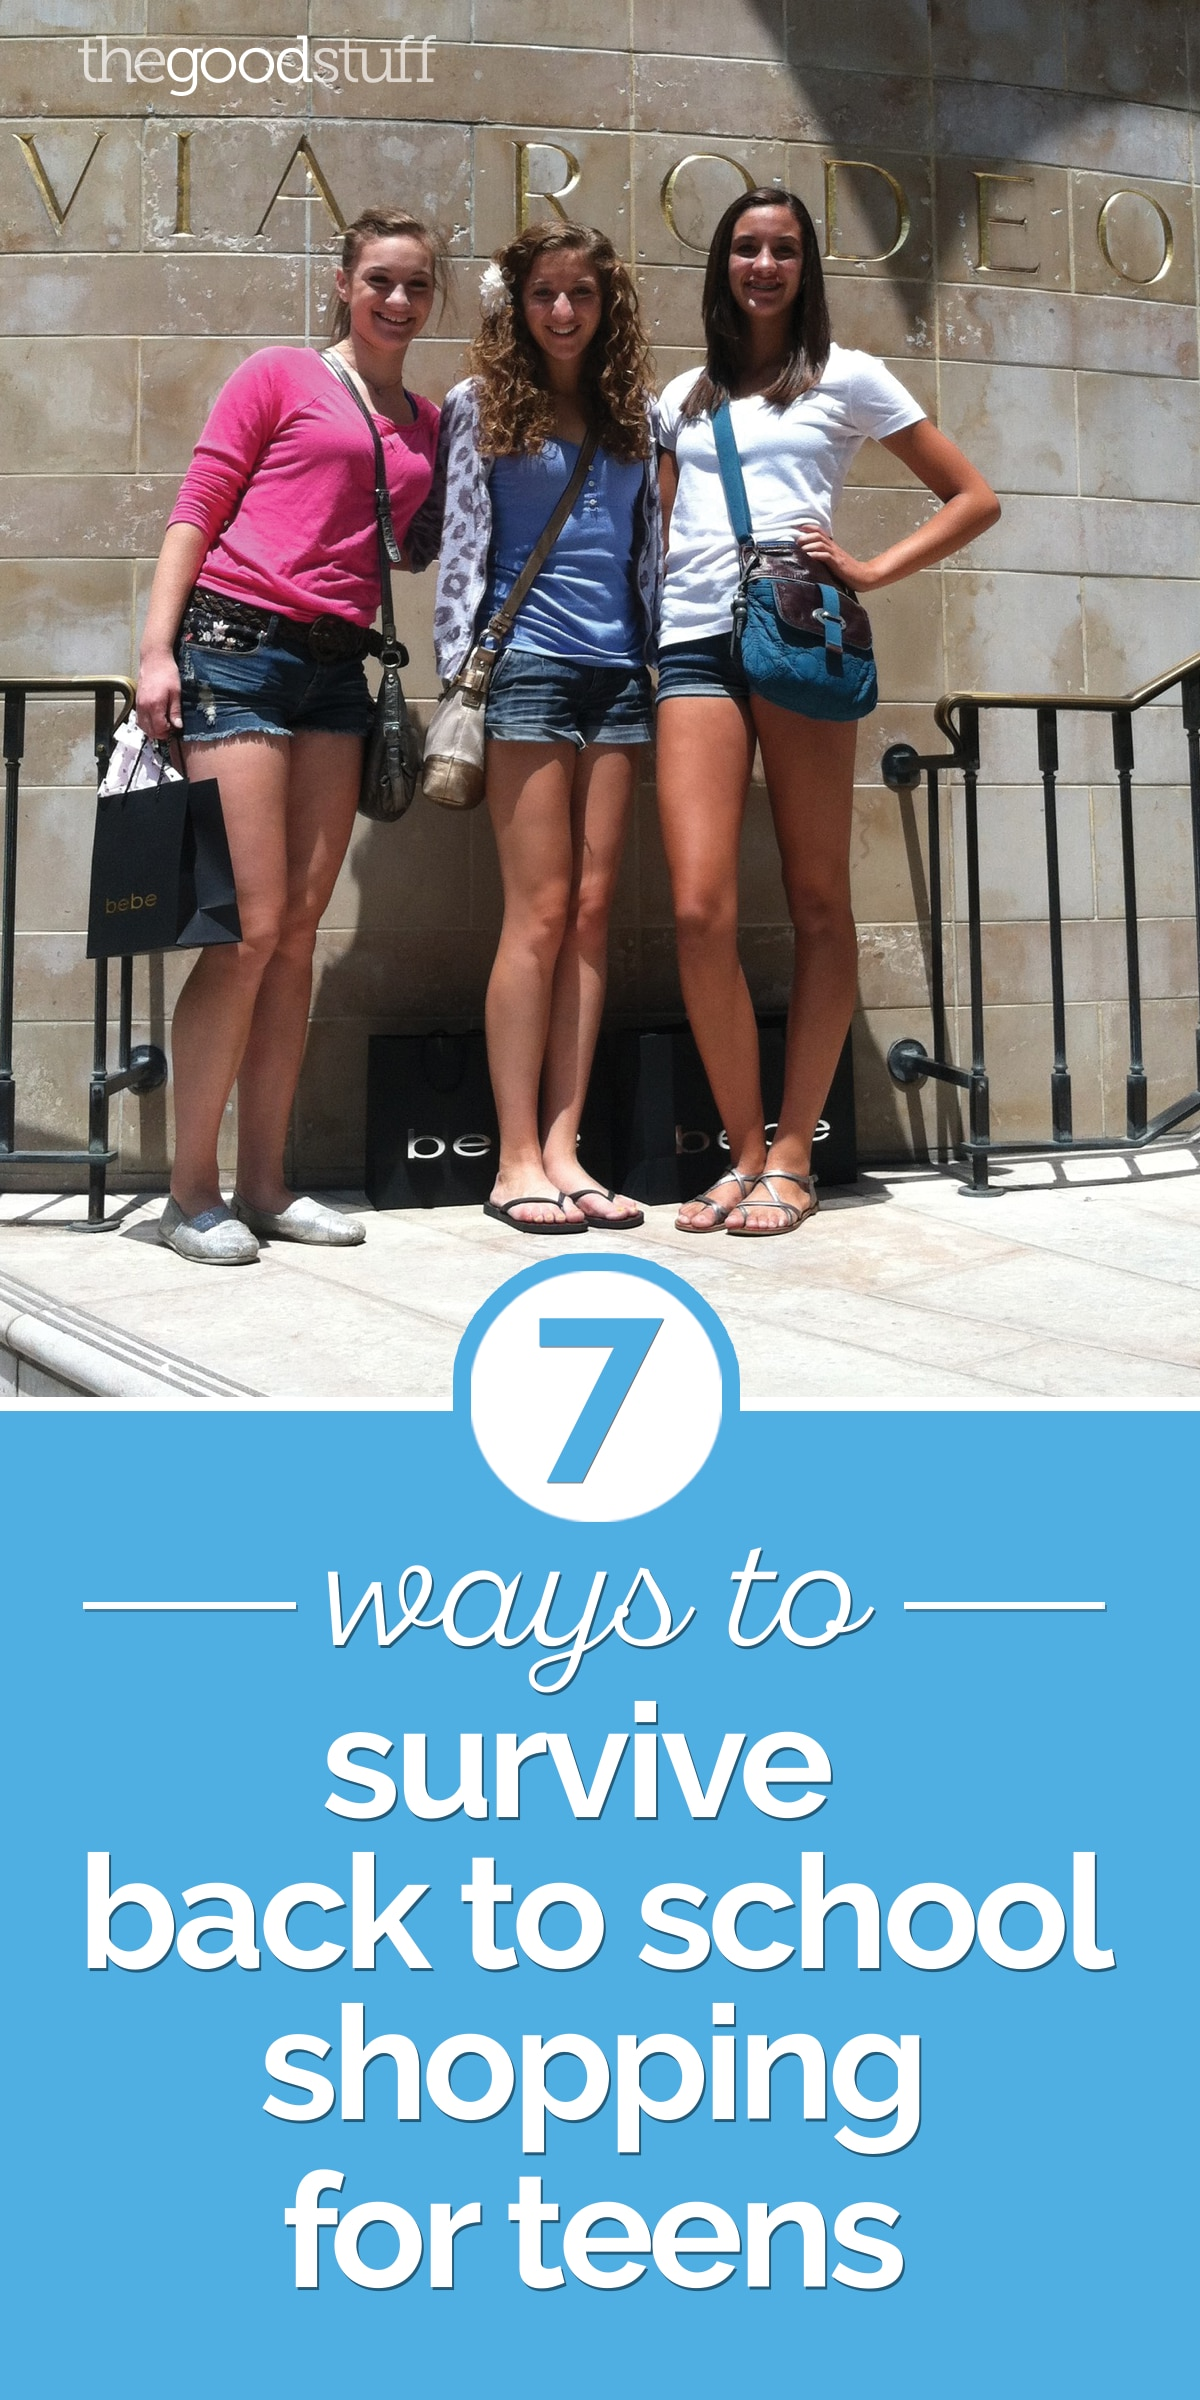 7 Ways to Survive Back to School Shopping for Teens | thegoodstuff